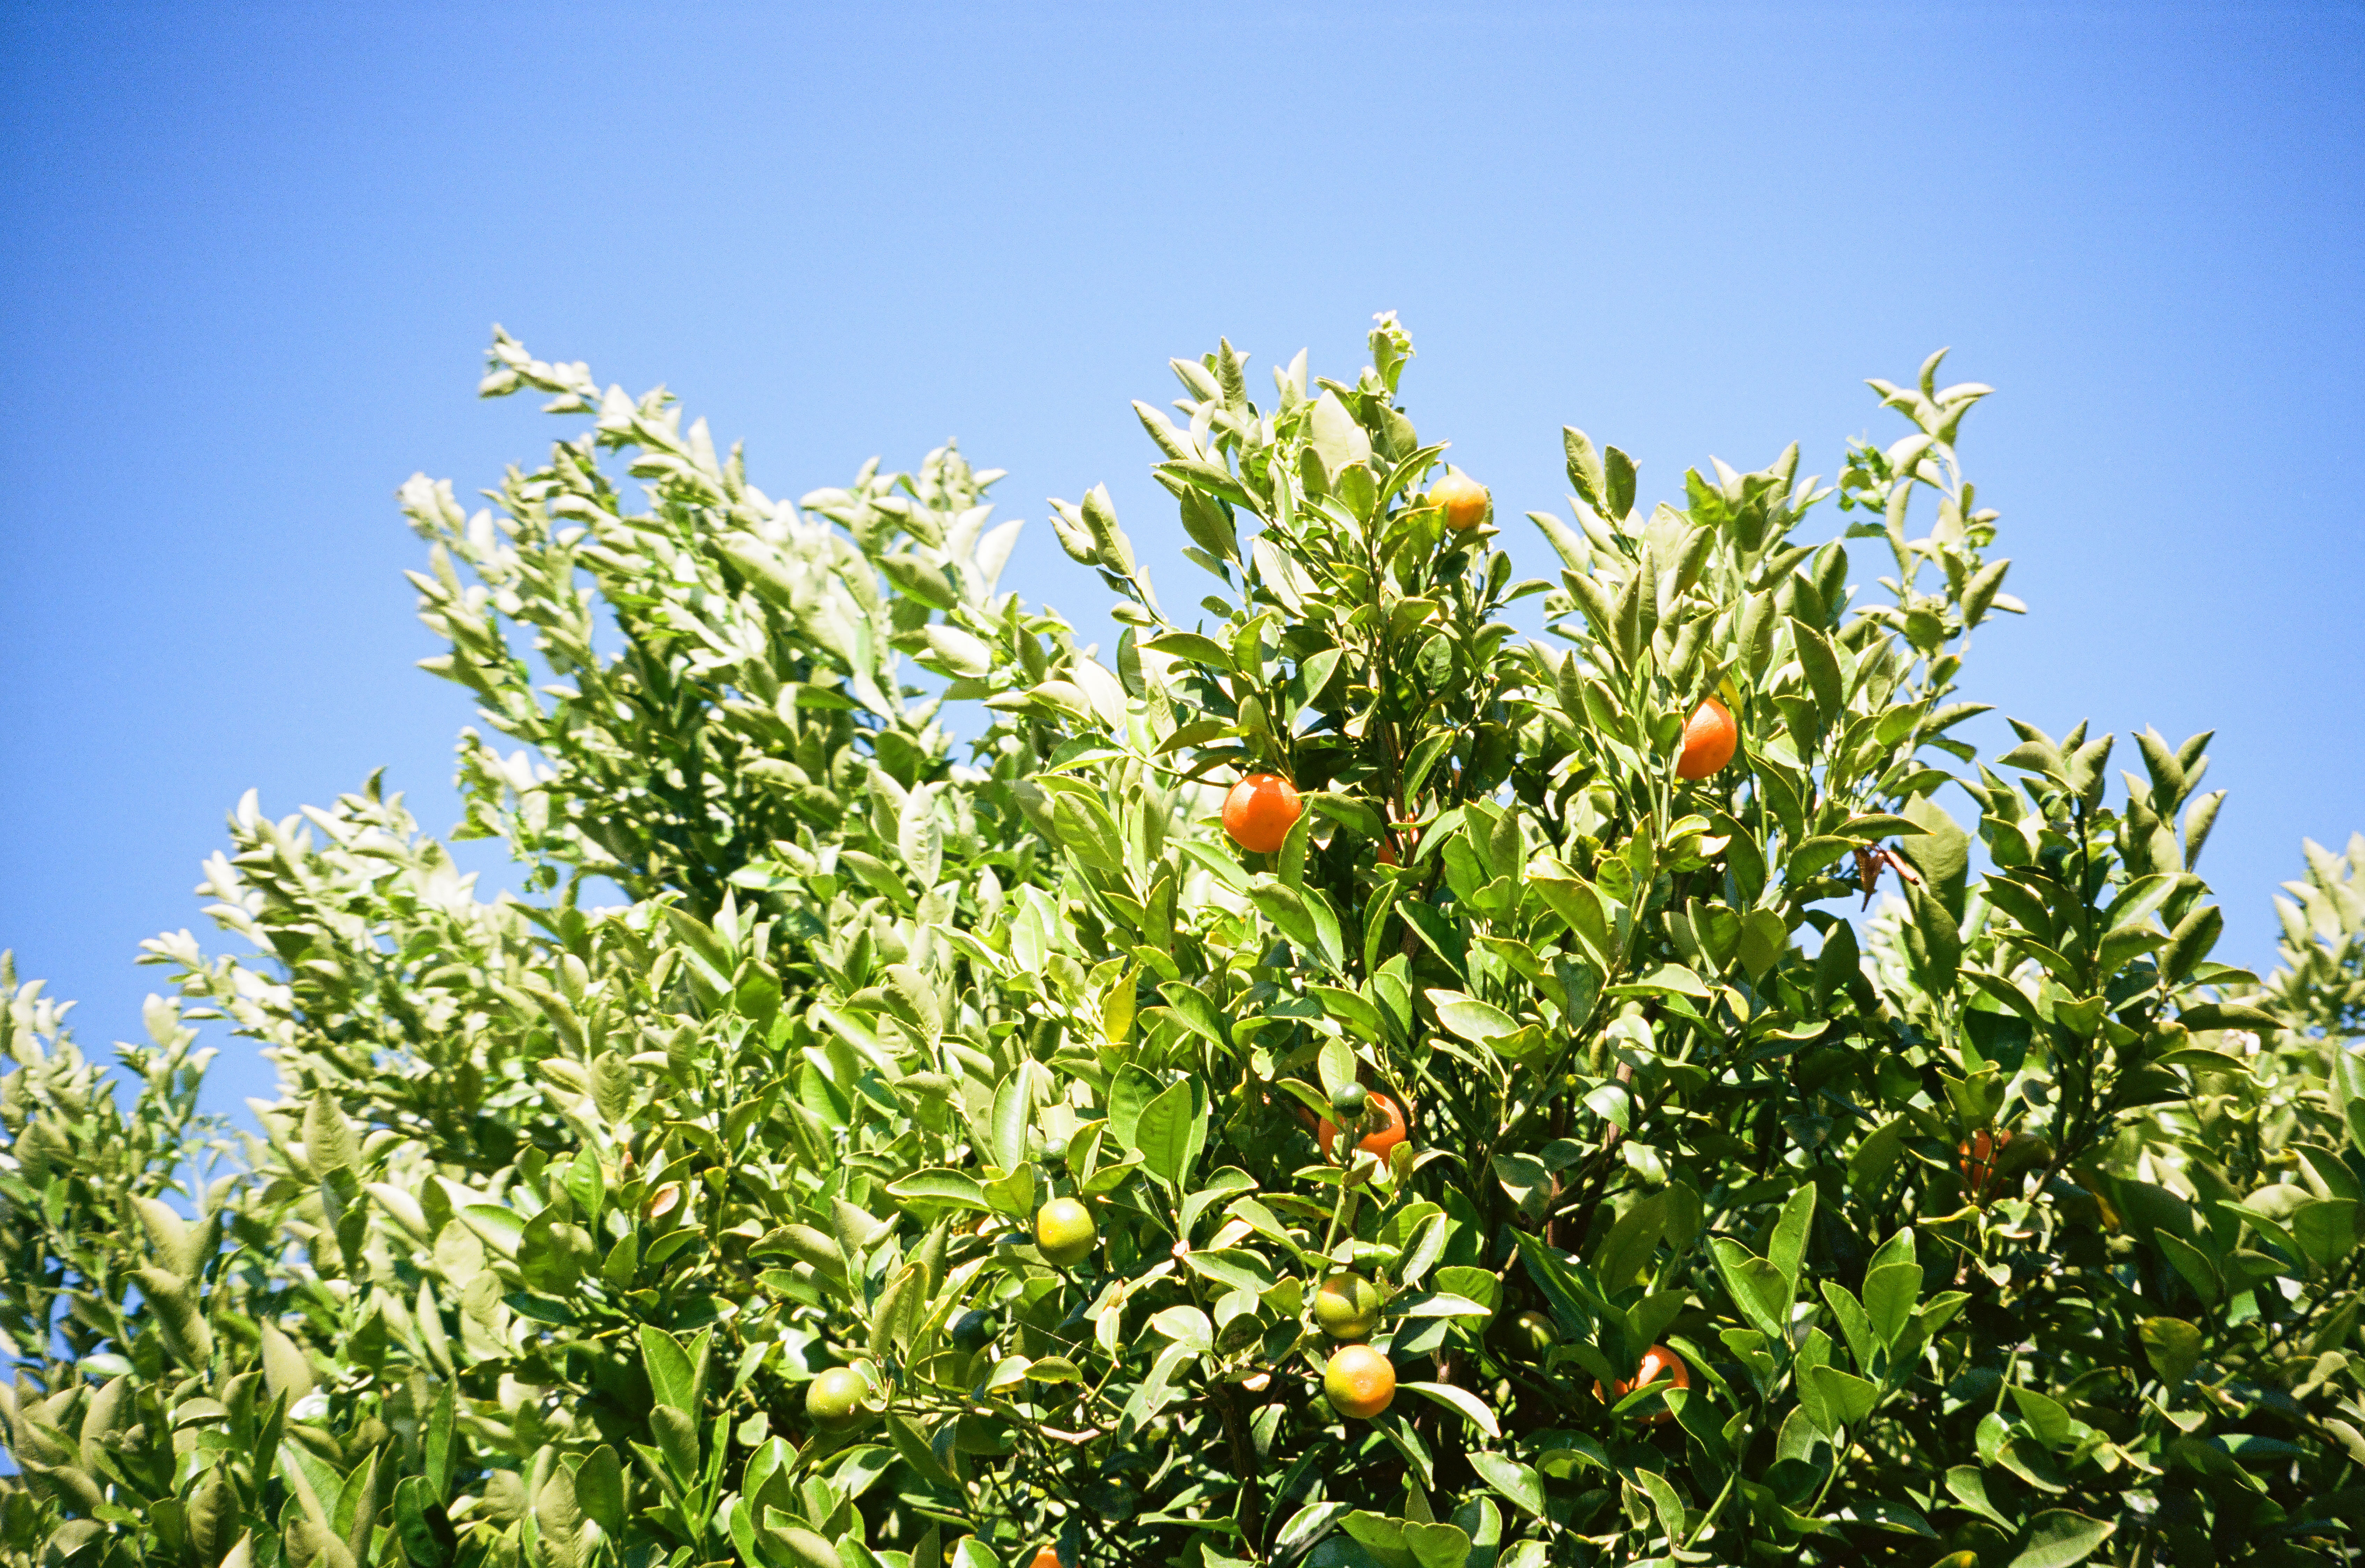 """Calamansi growing in an Orange County backyard. Shot using a Canon Sure Shot 85 Zoom point and shoot camera. """"Super Scan"""" by The Darkroom."""